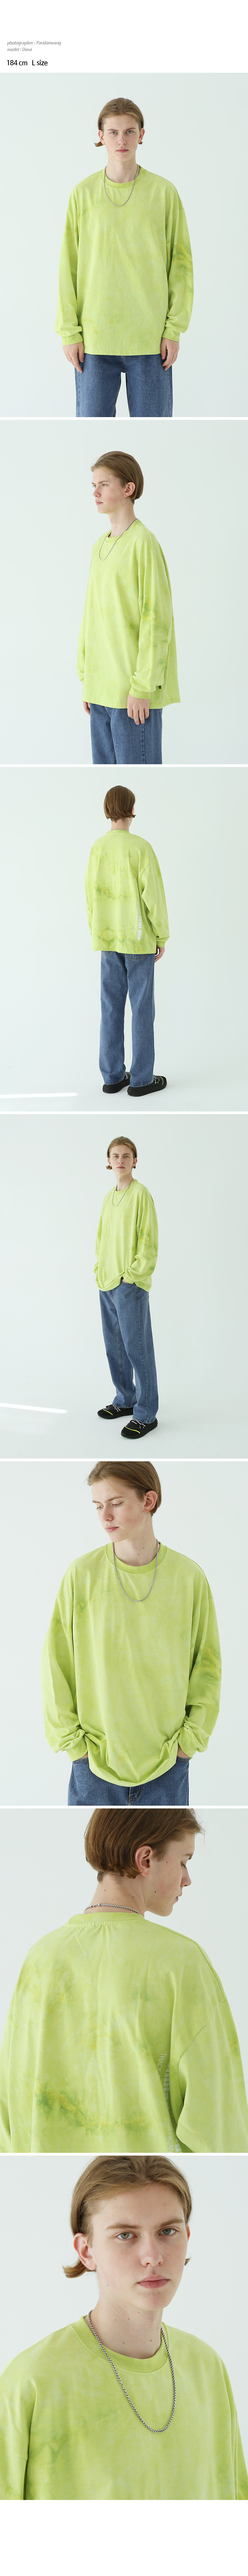 tai262ls-yellow-green_02.jpg